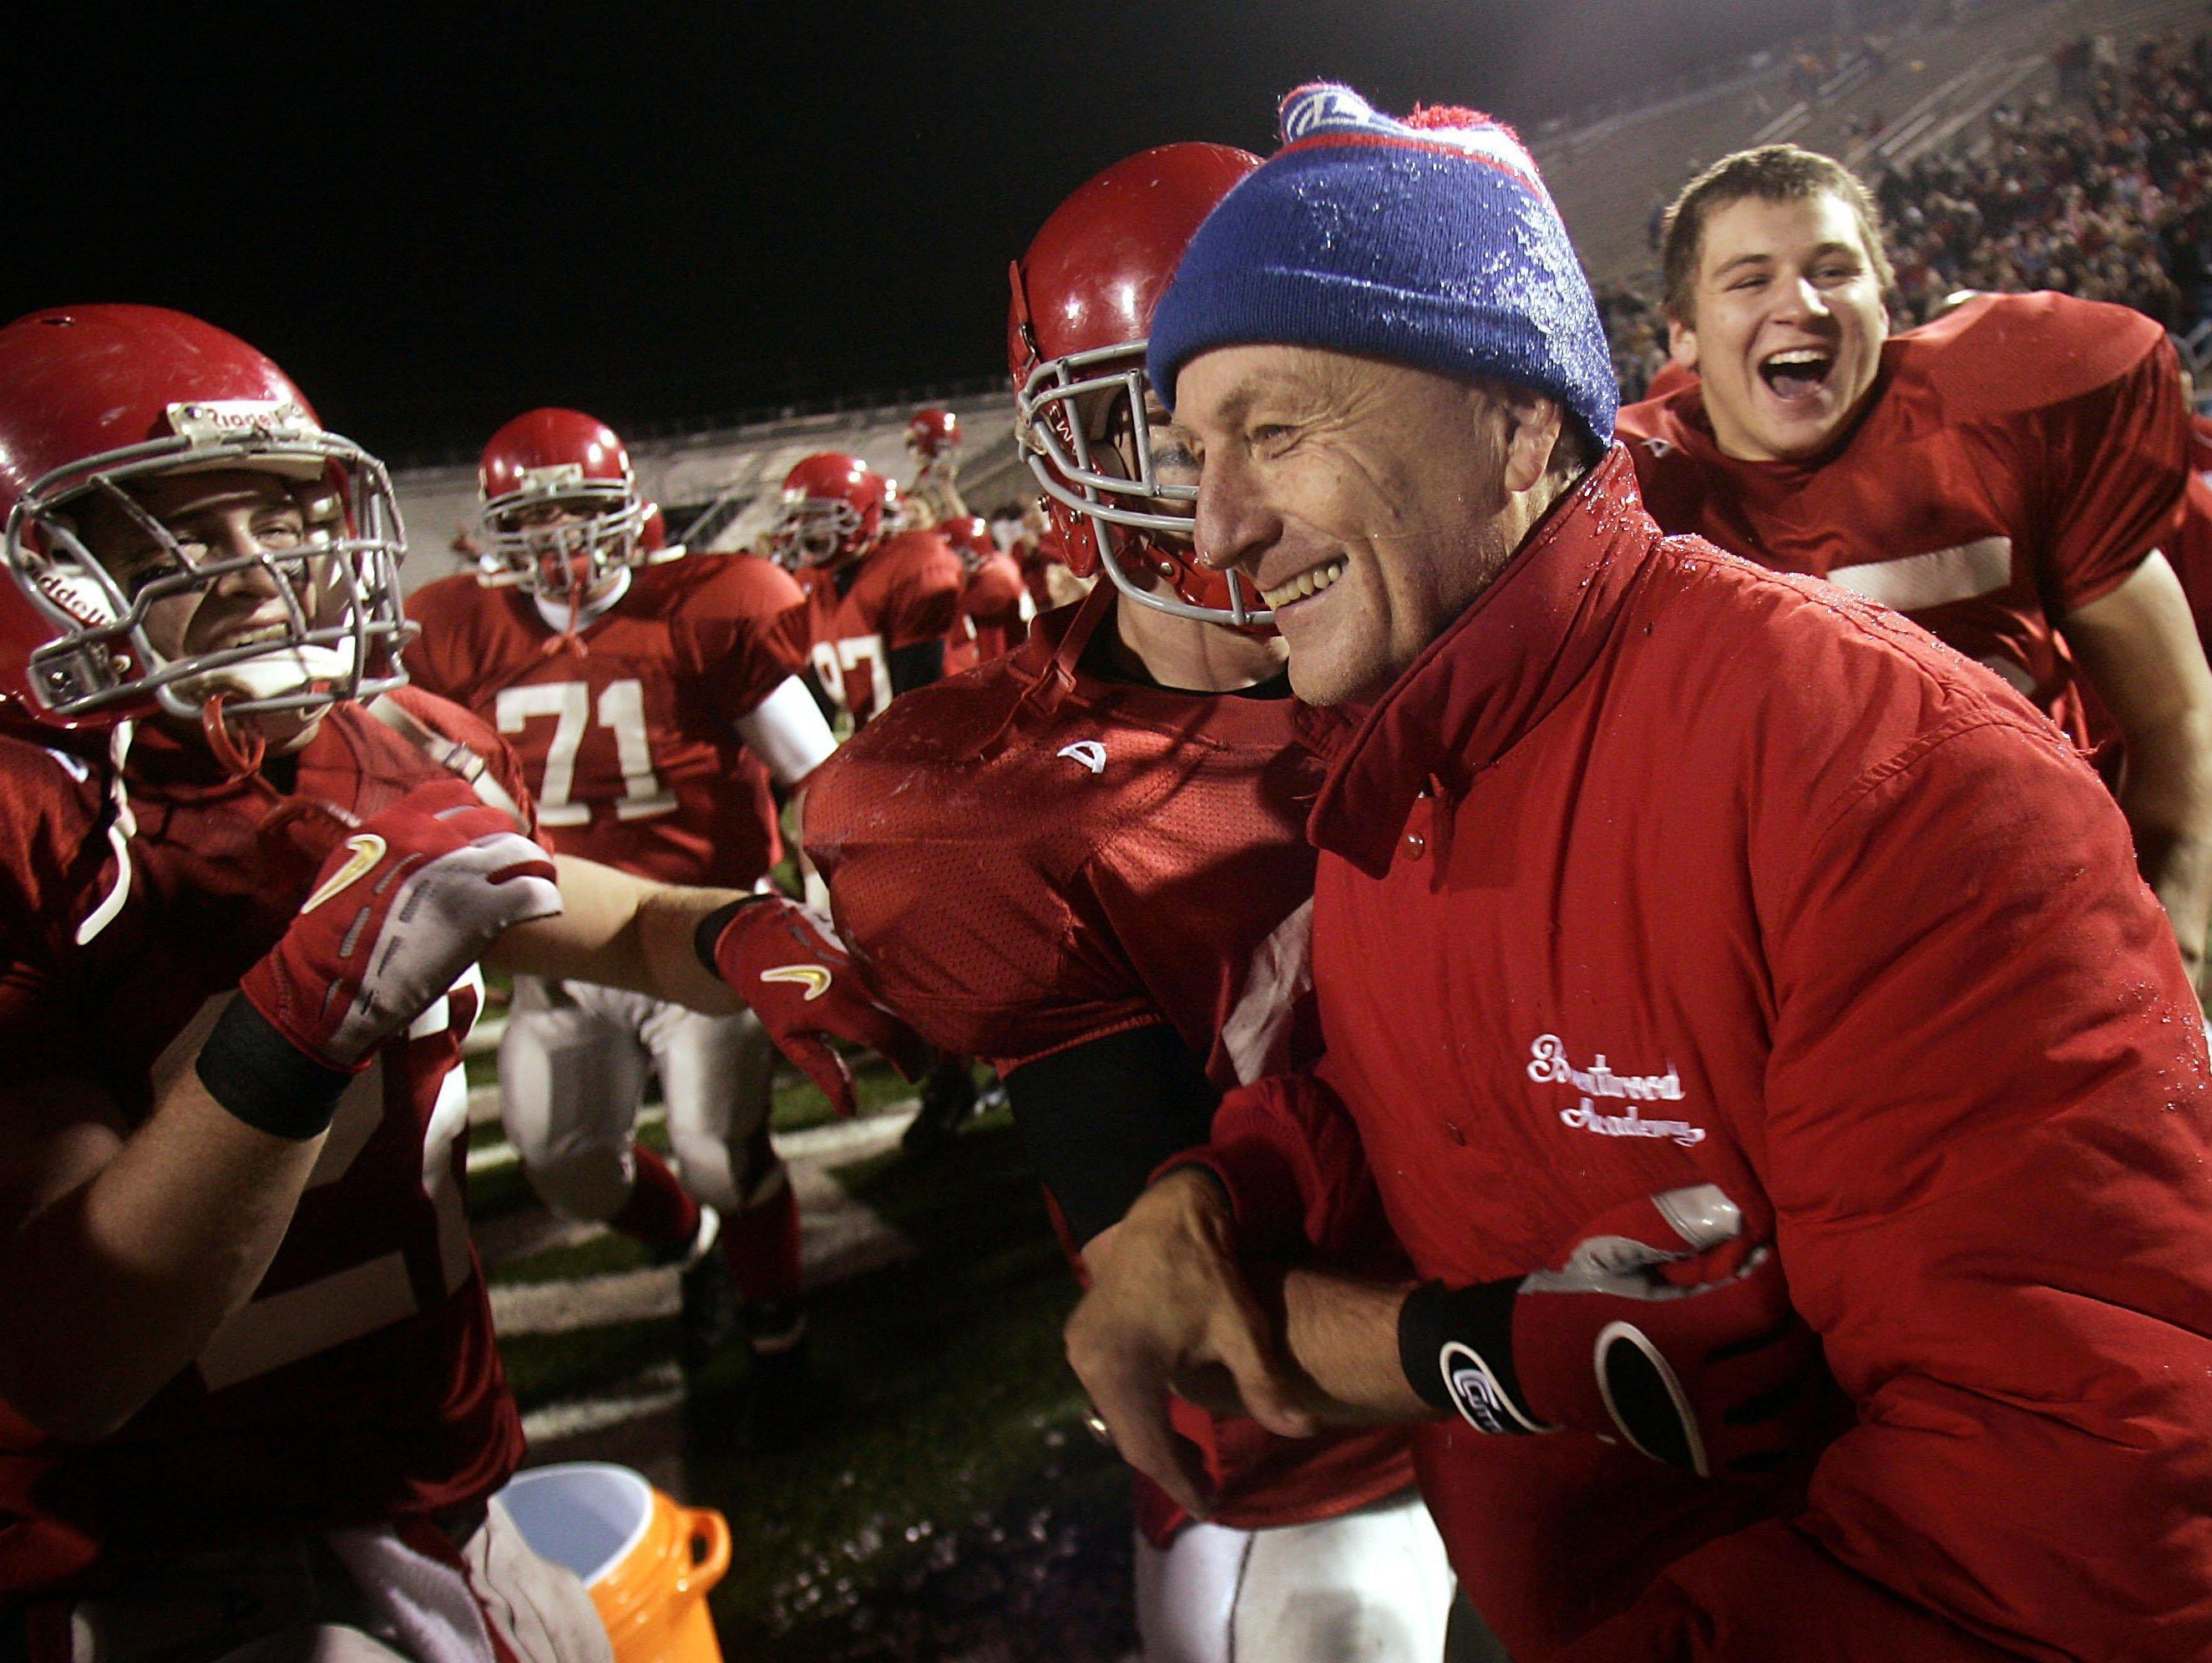 Brentwood Academy, led by longtime coach Carlton Flatt, defeated McCallie in the 2006 BlueCross Bowl after having fallen to the Blue Tornado in the regular season.